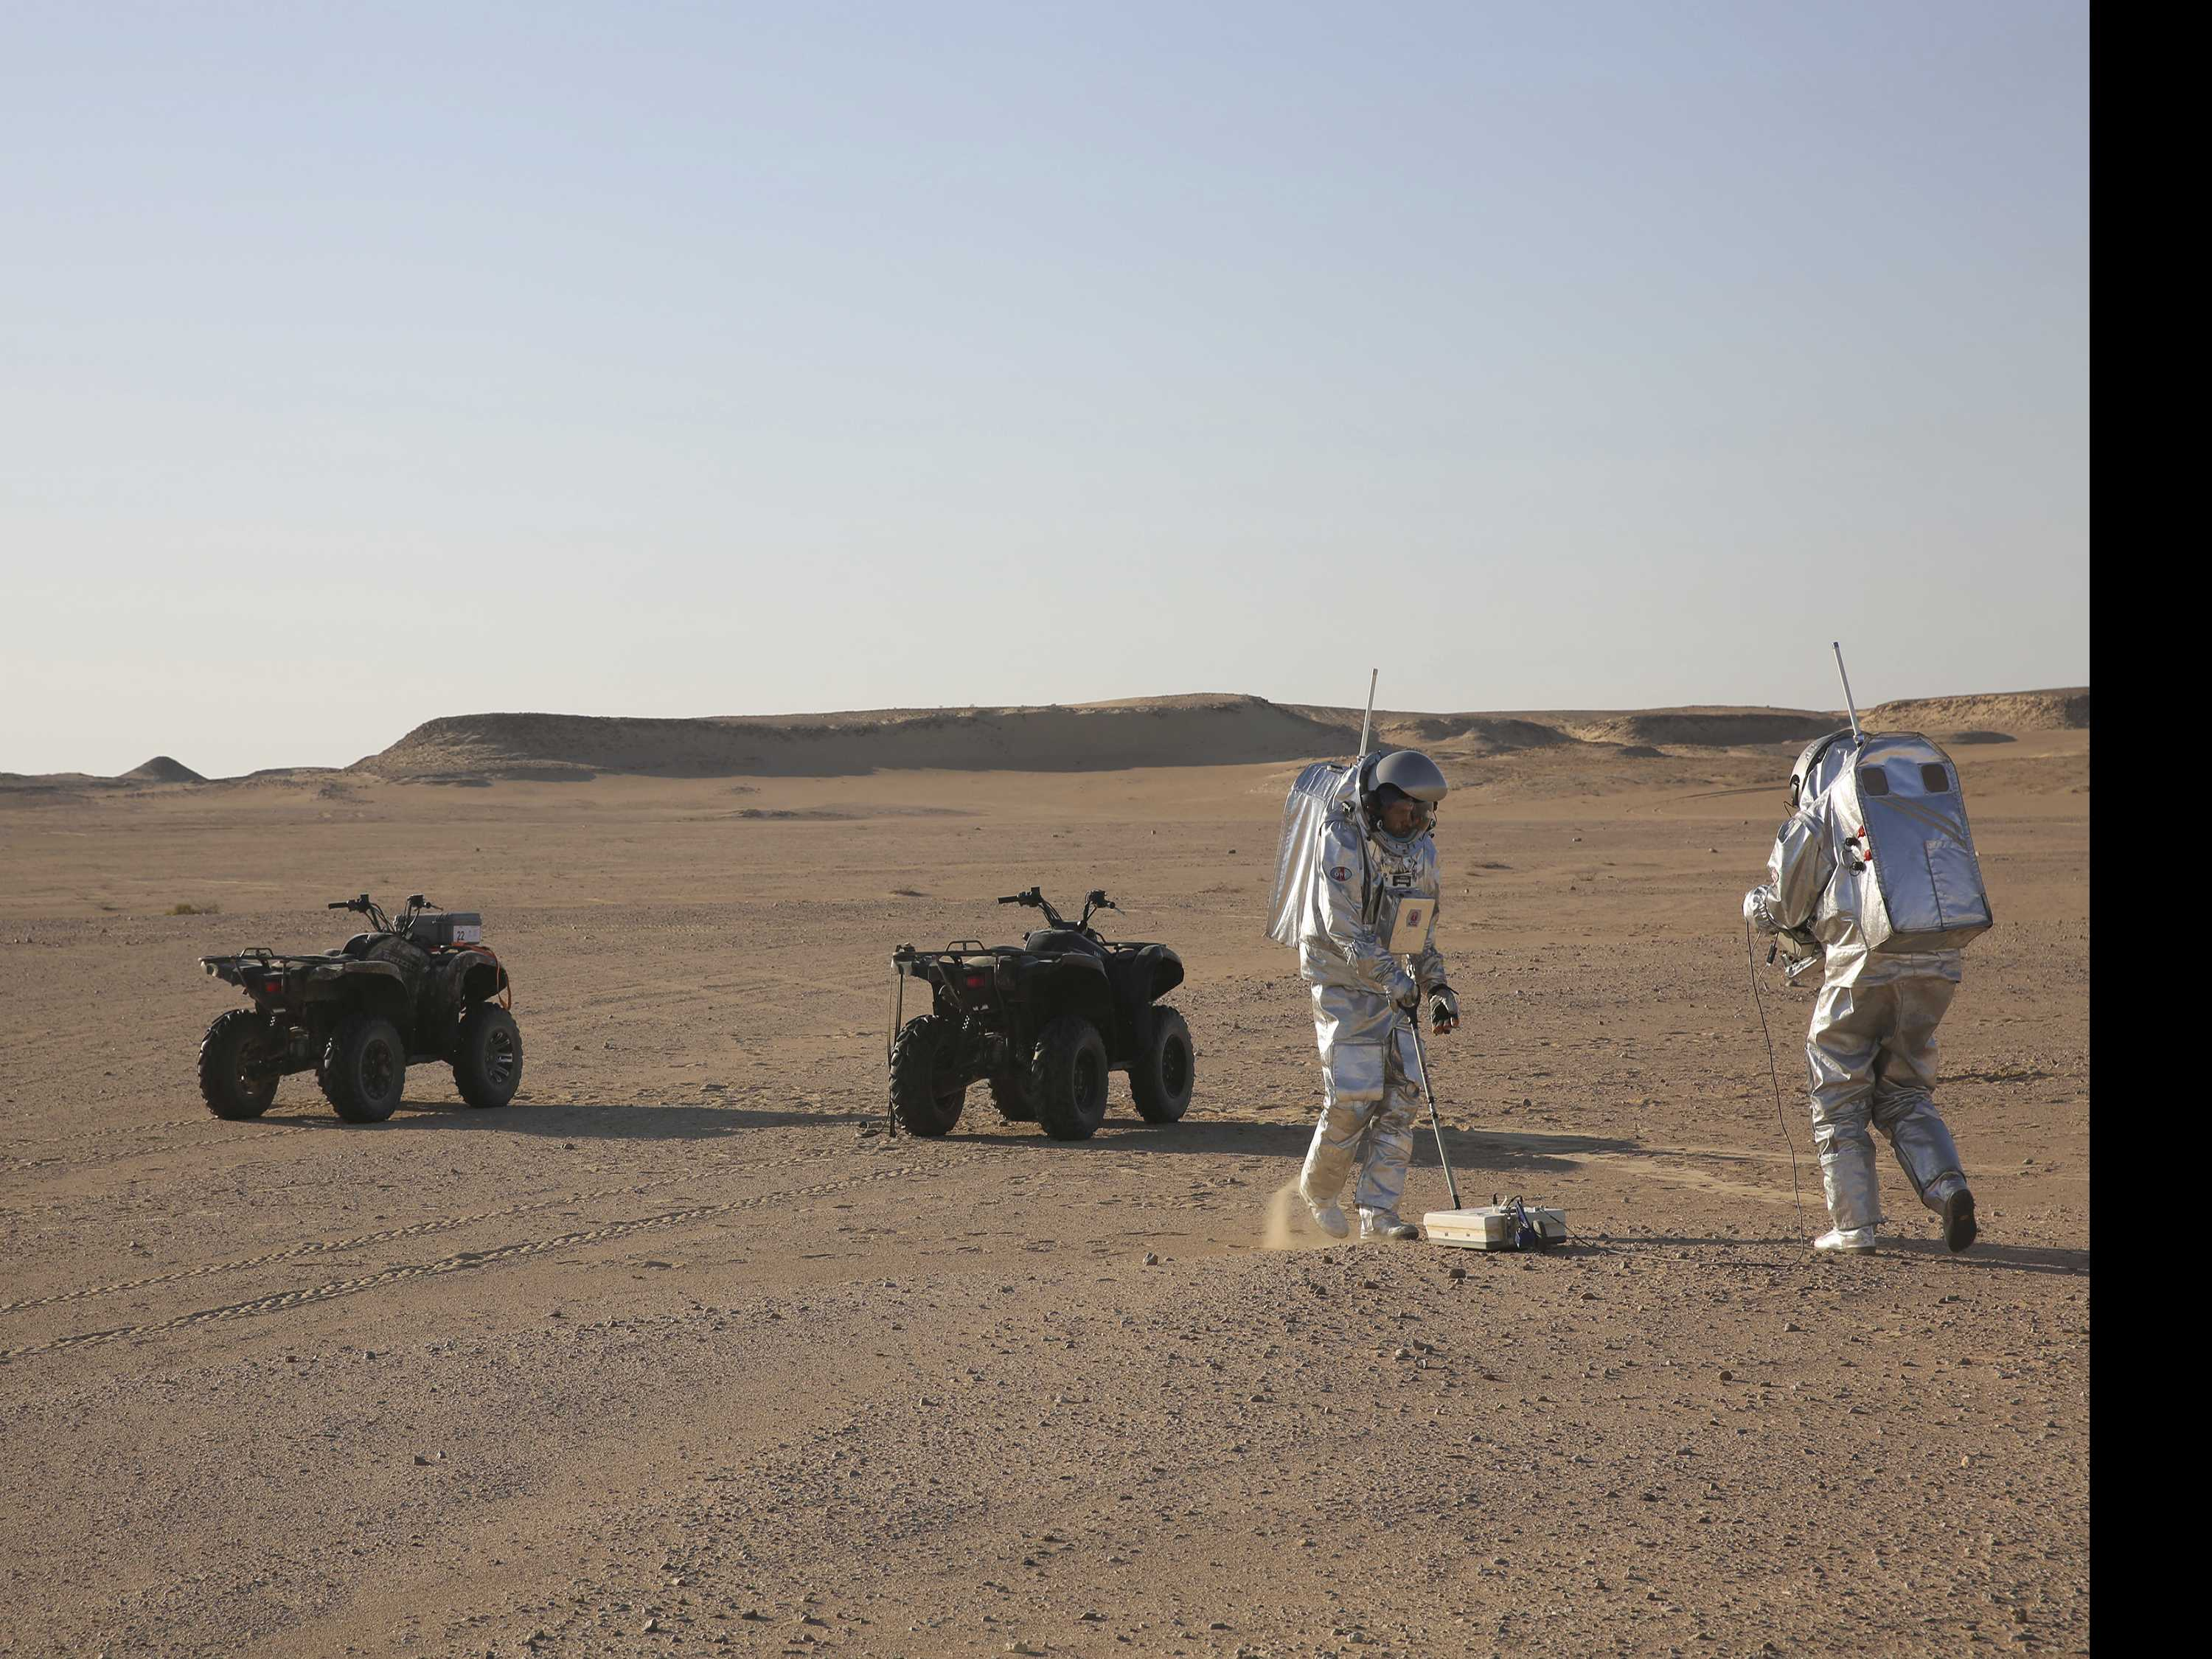 Mars on Earth: Simulation Tests in Remote Desert of Oman